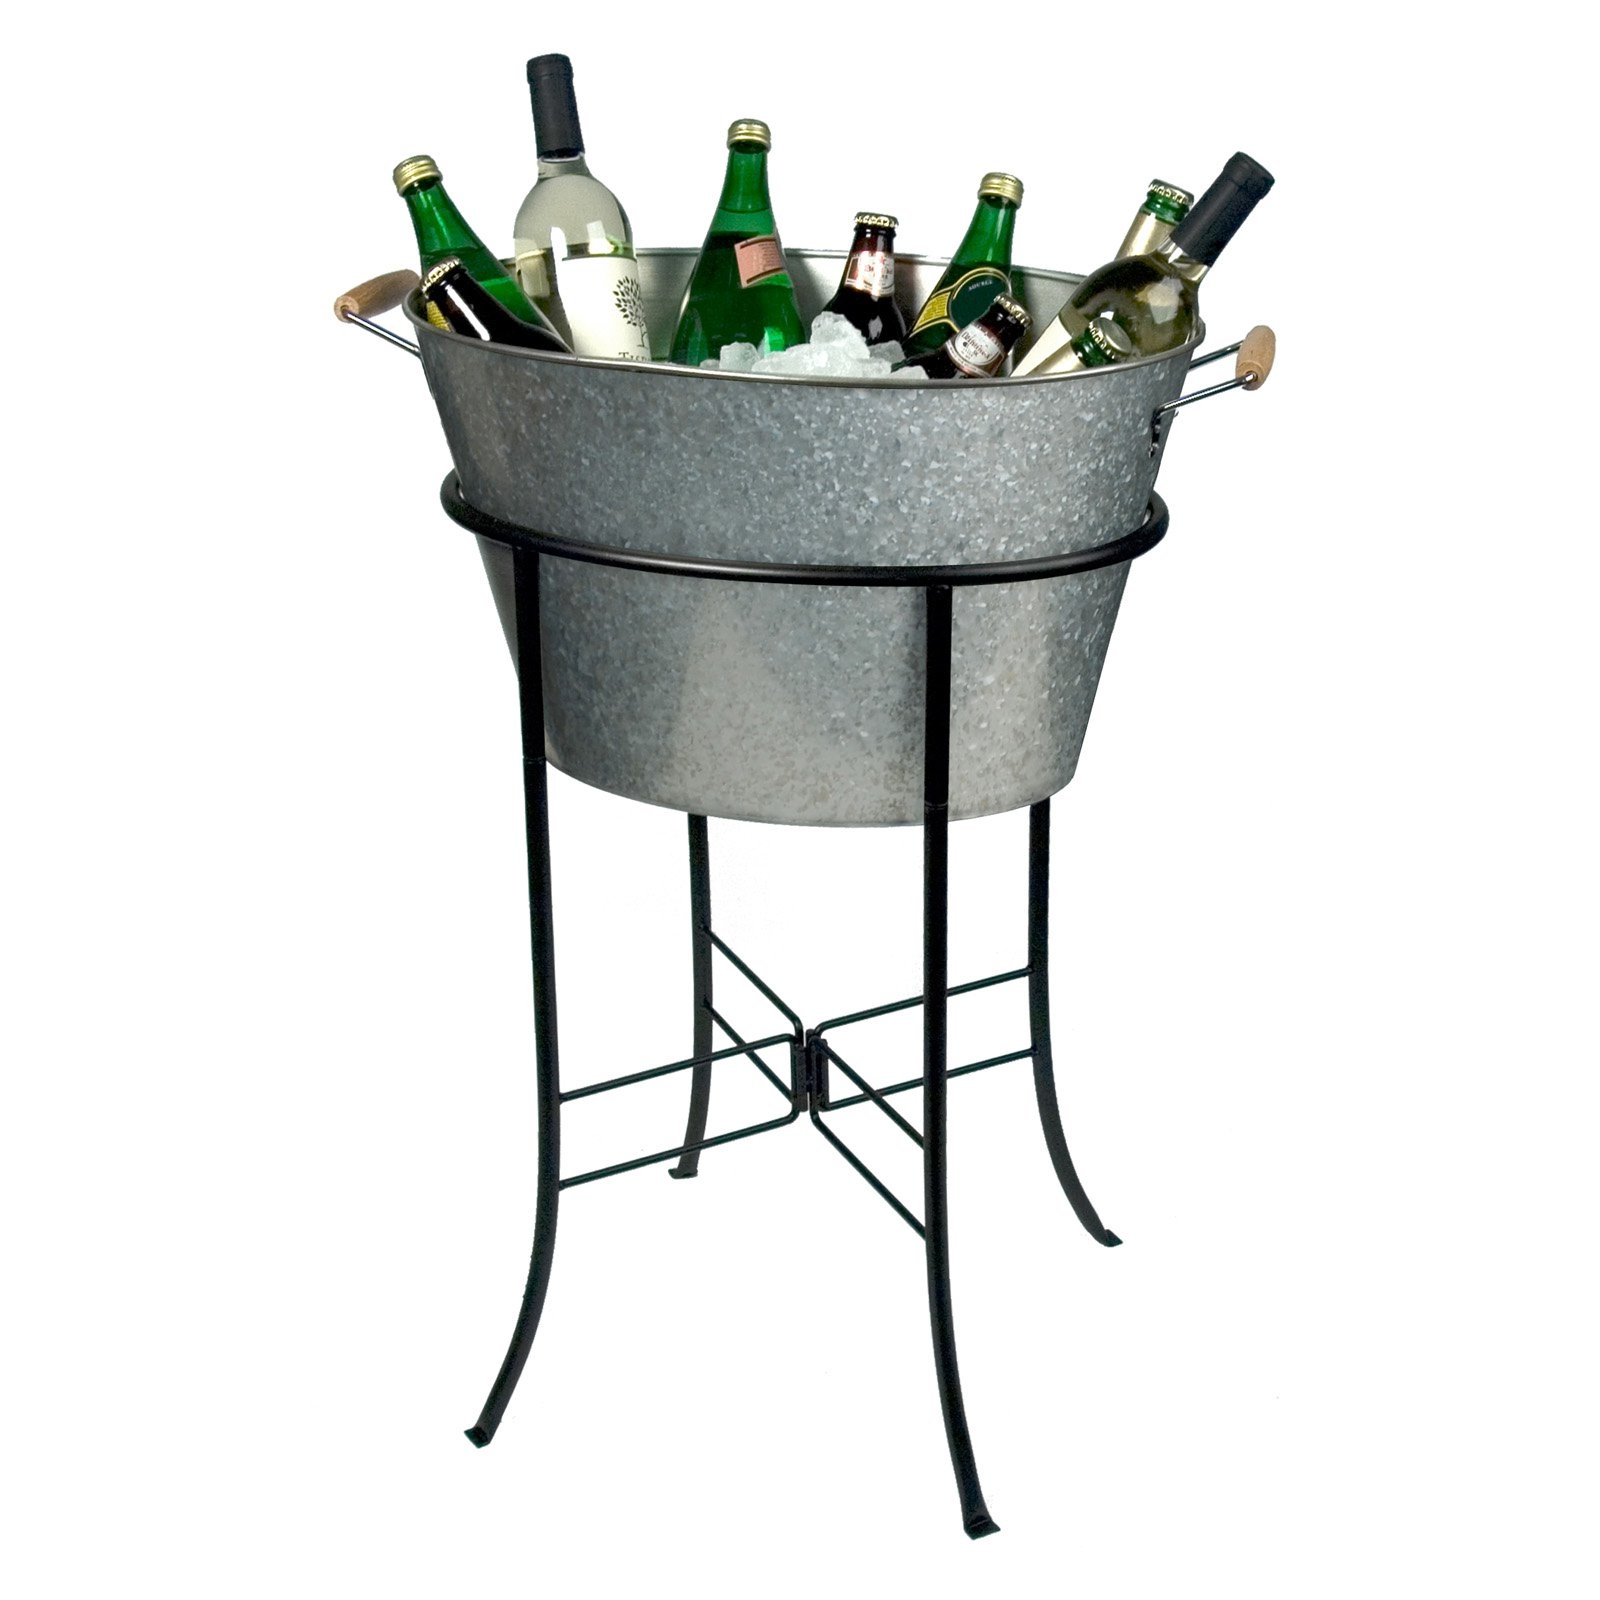 Artland Inc. Oasis Galvanized Party Tub with Stand